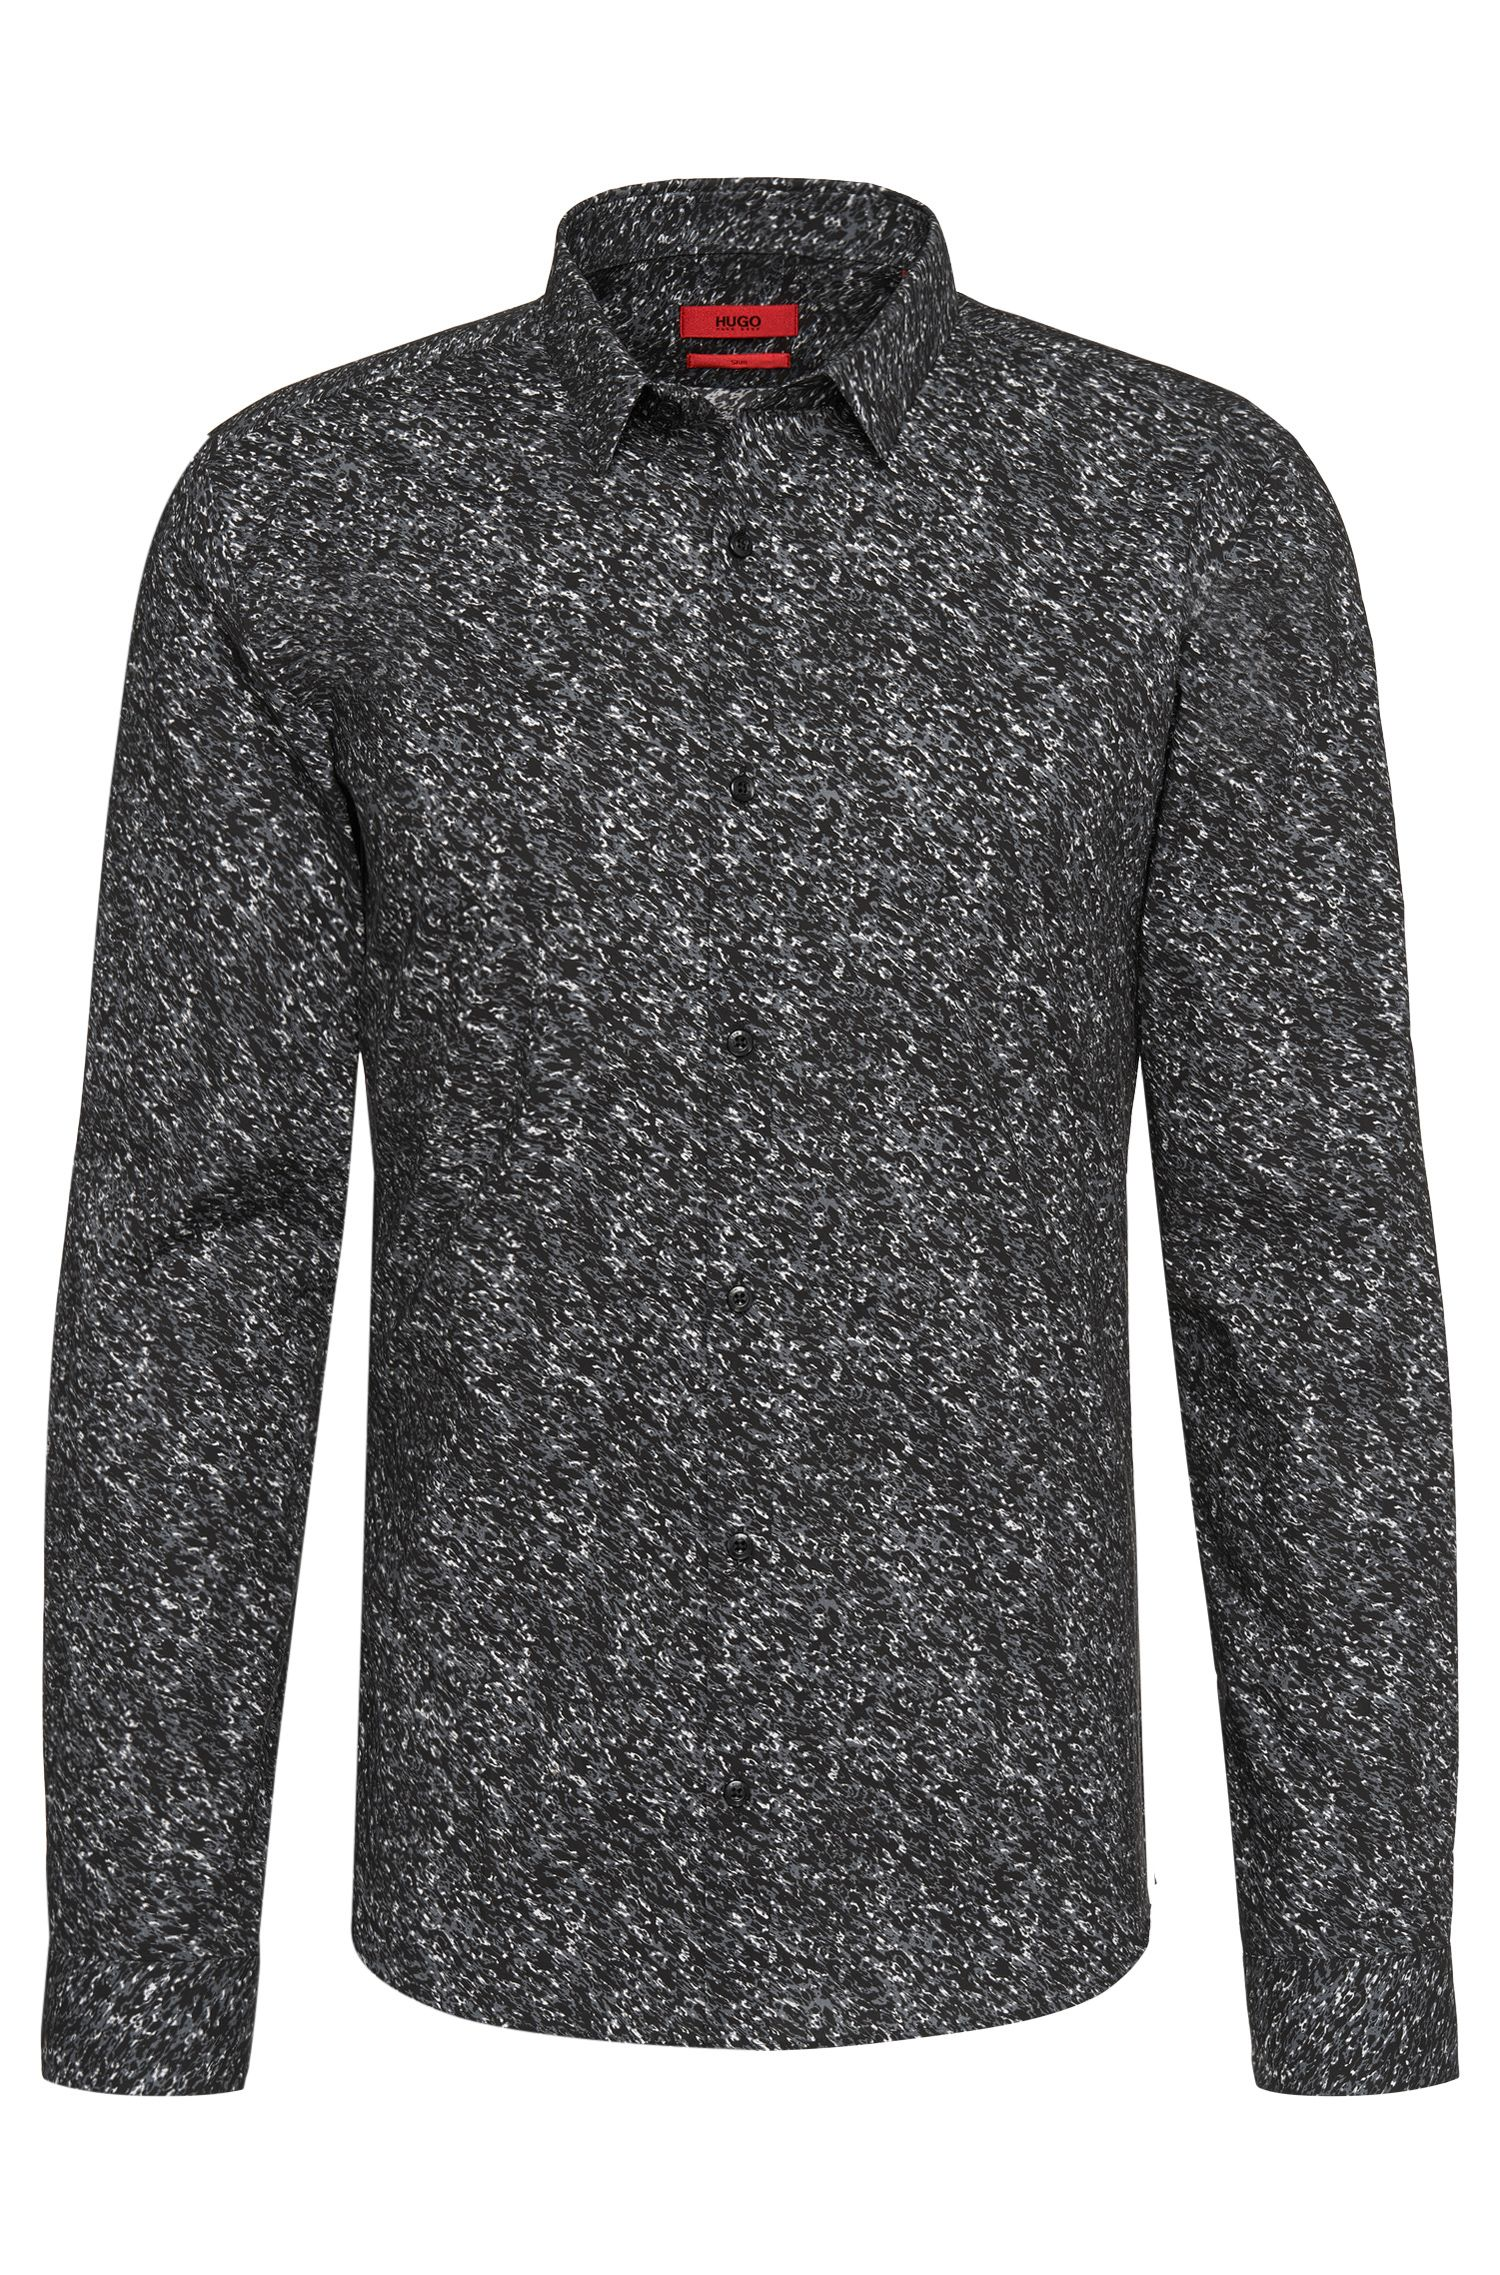 All-over patterned slim-fit shirt in cotton: 'Ero3'